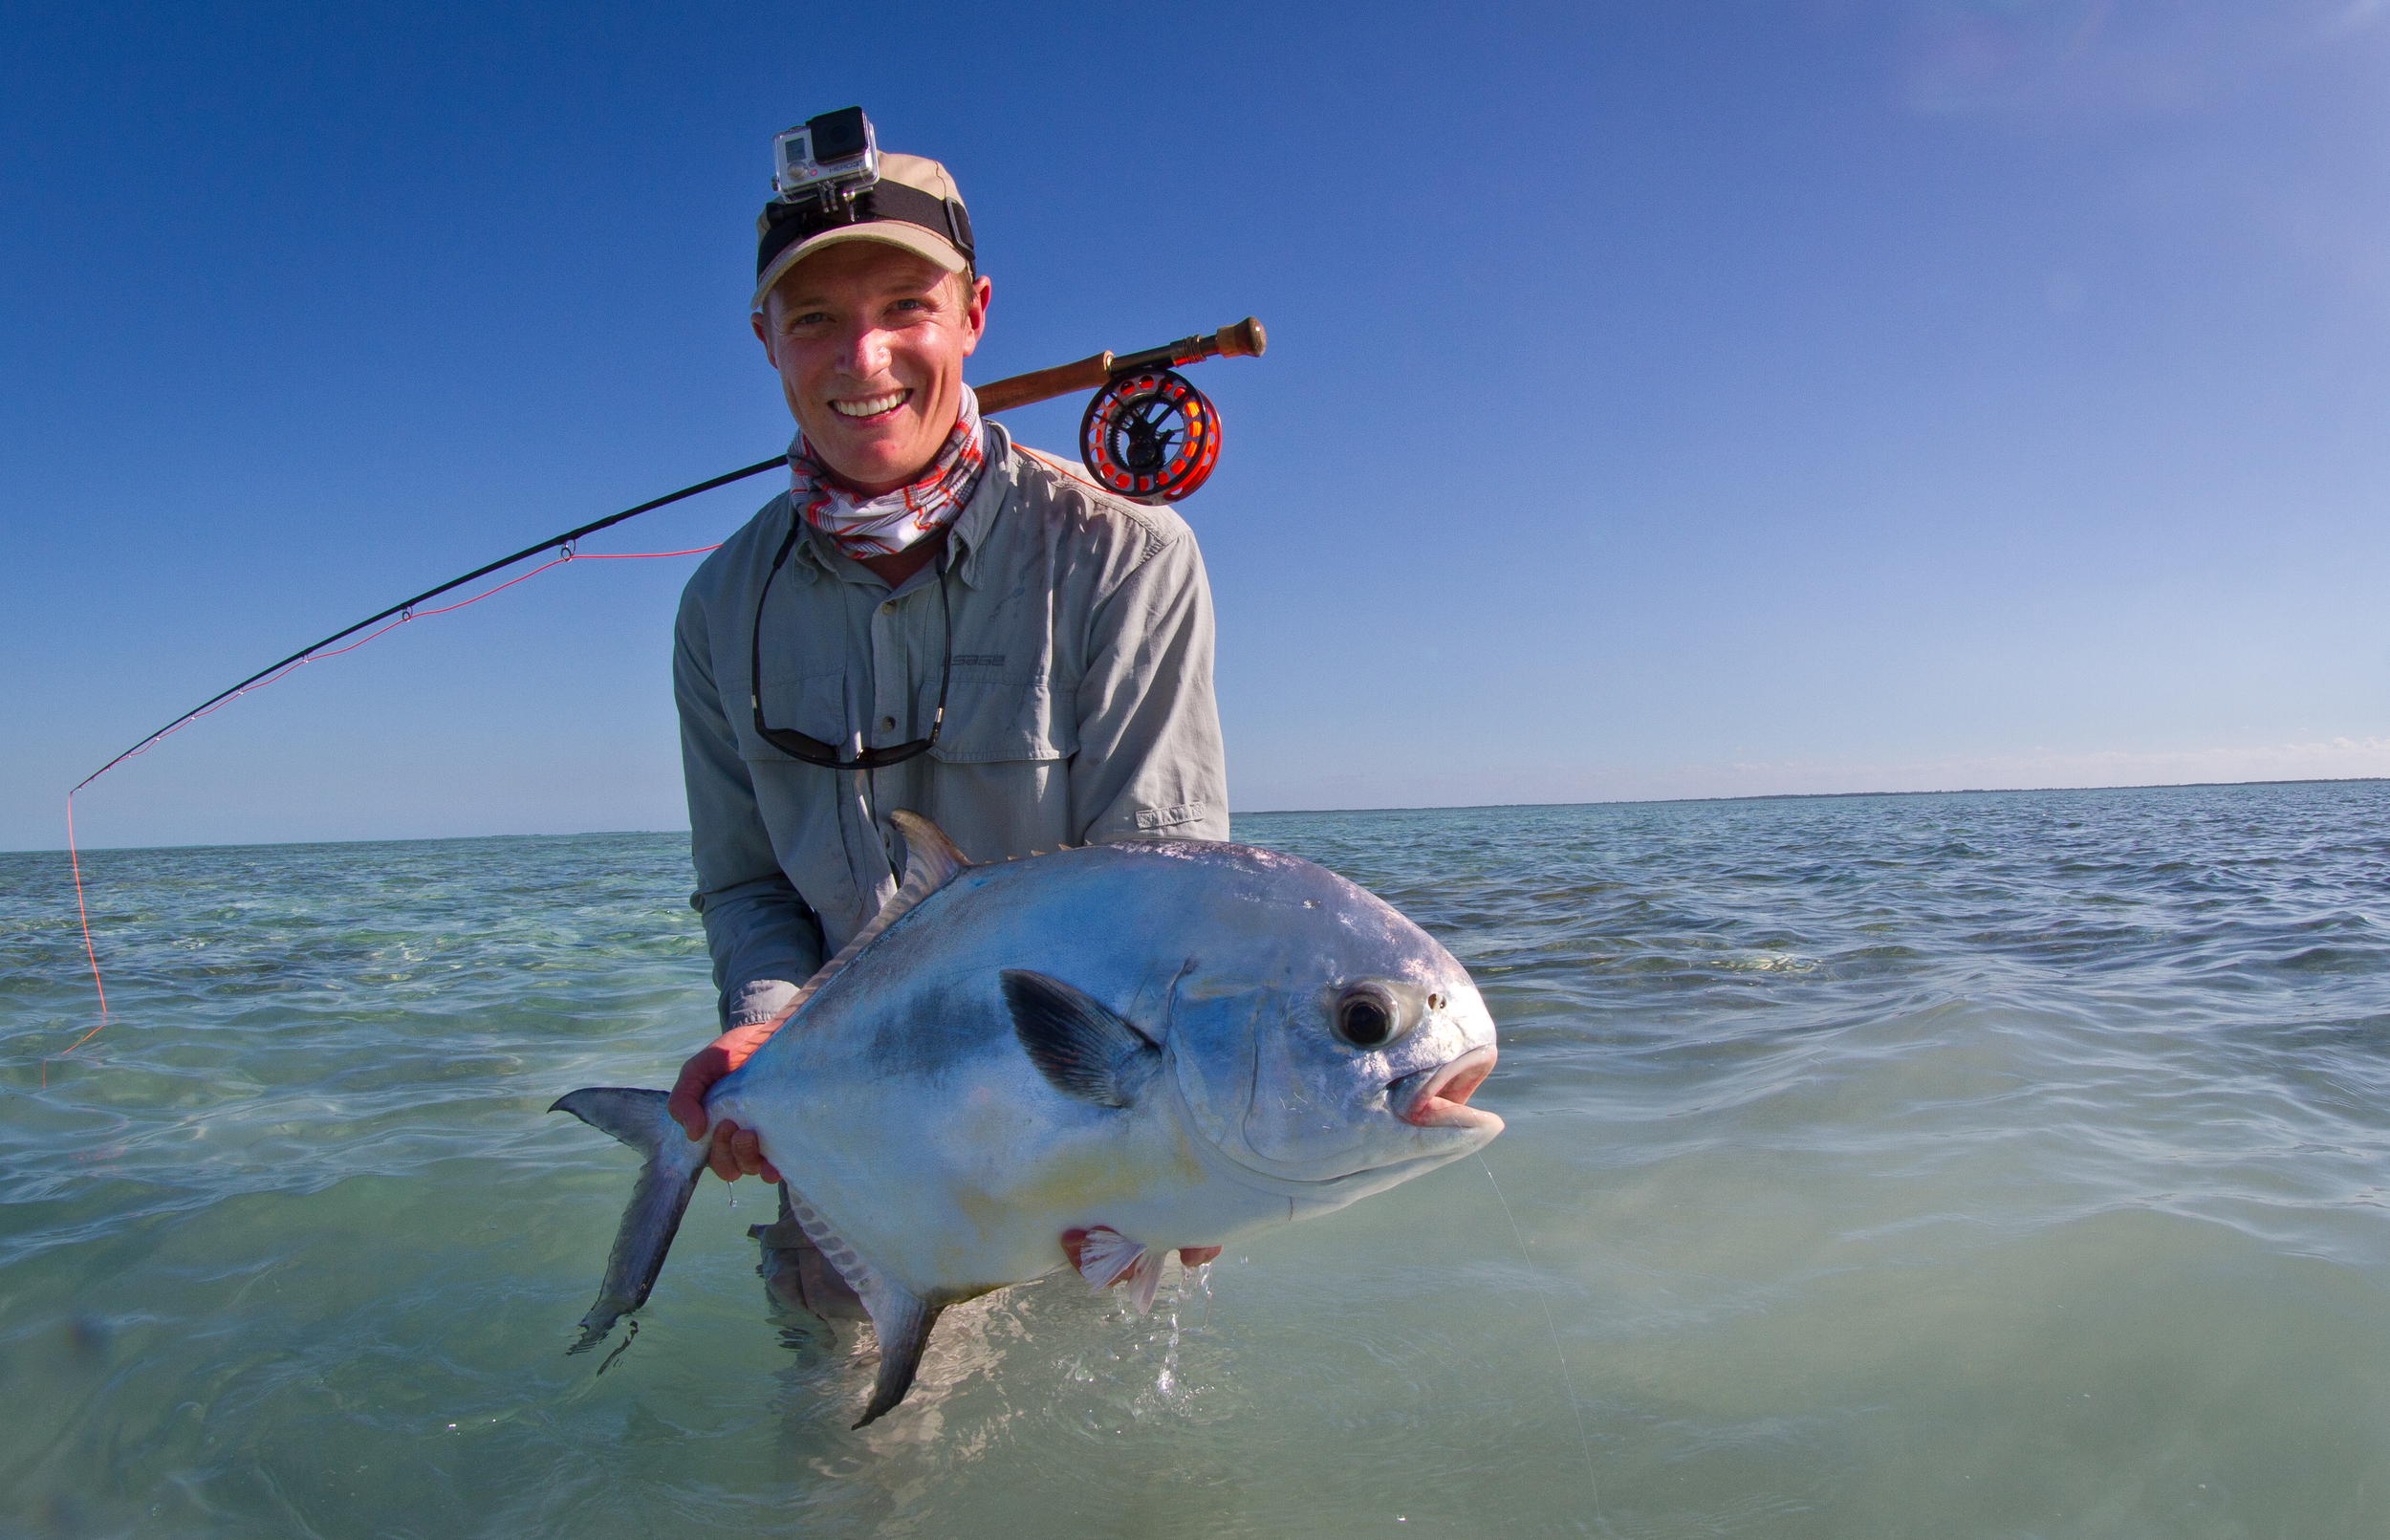 Fly Fishing for Permit, Cayo Largo, Cuba